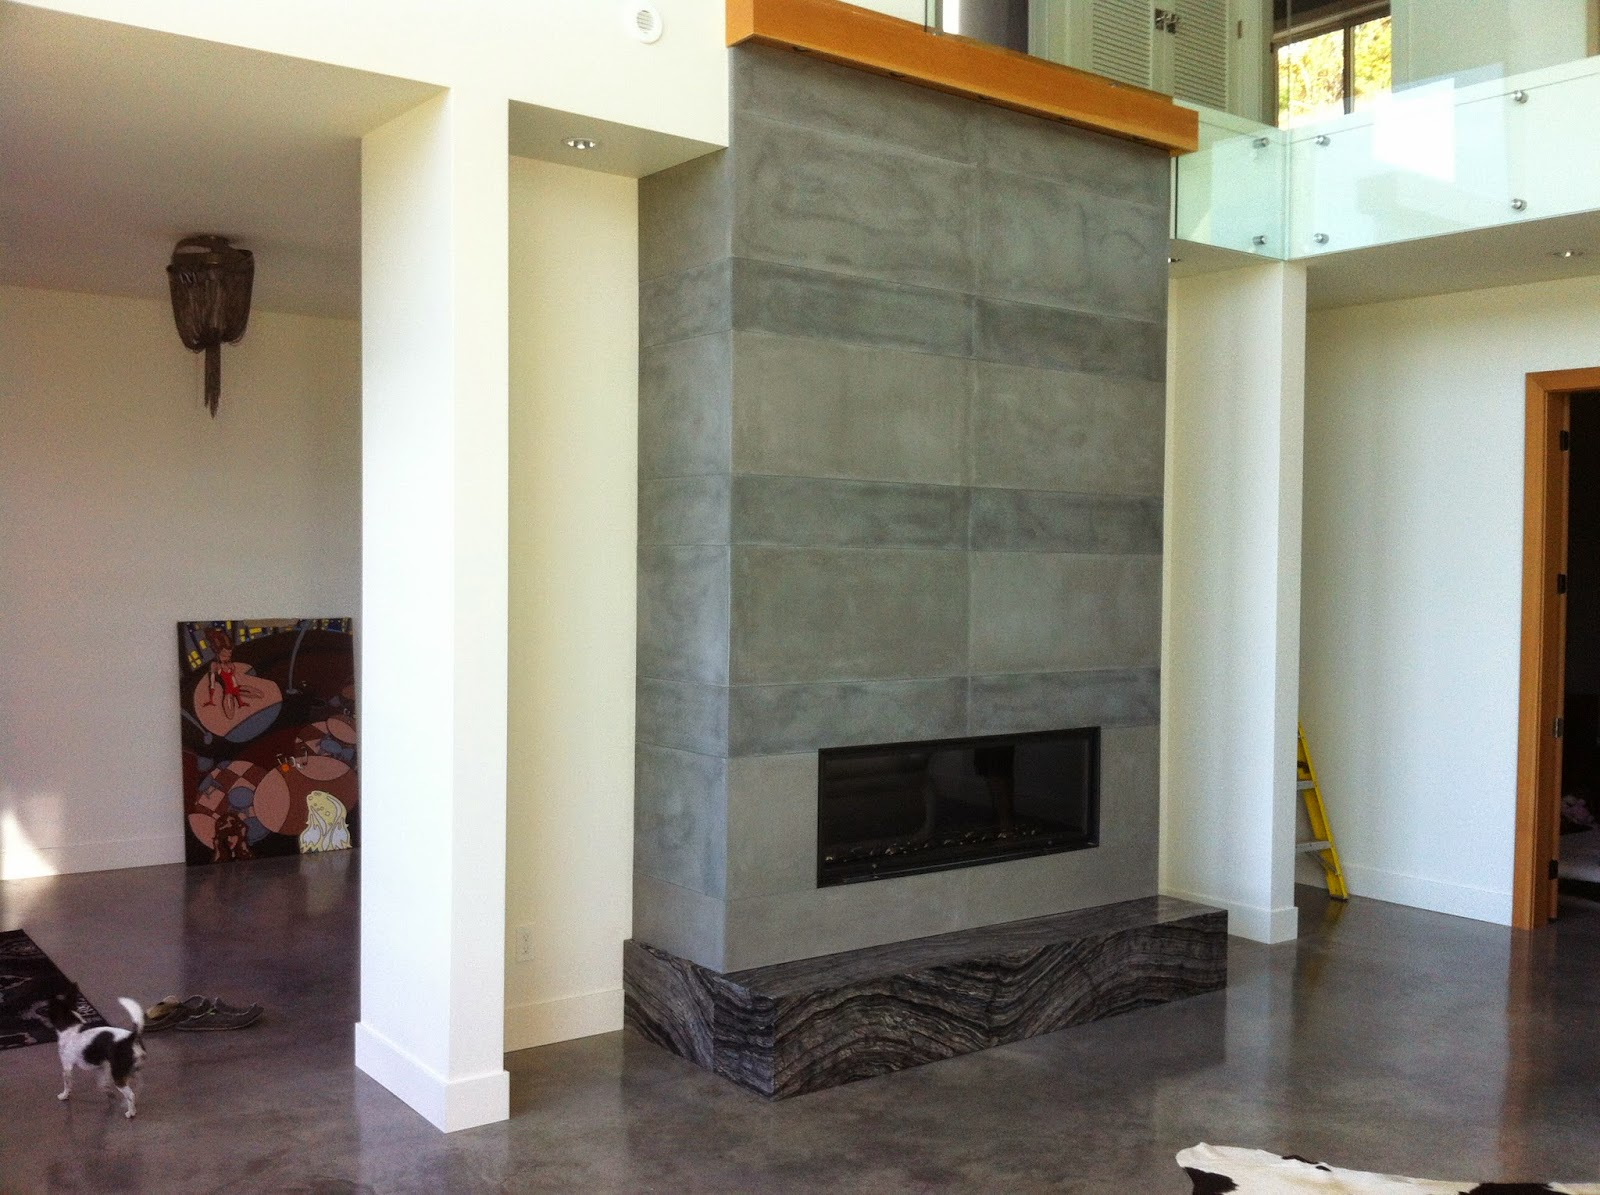 Mode Concrete Contemporary Concrete Fireplace Tiles Are All The Rage Article By Mode Concrete